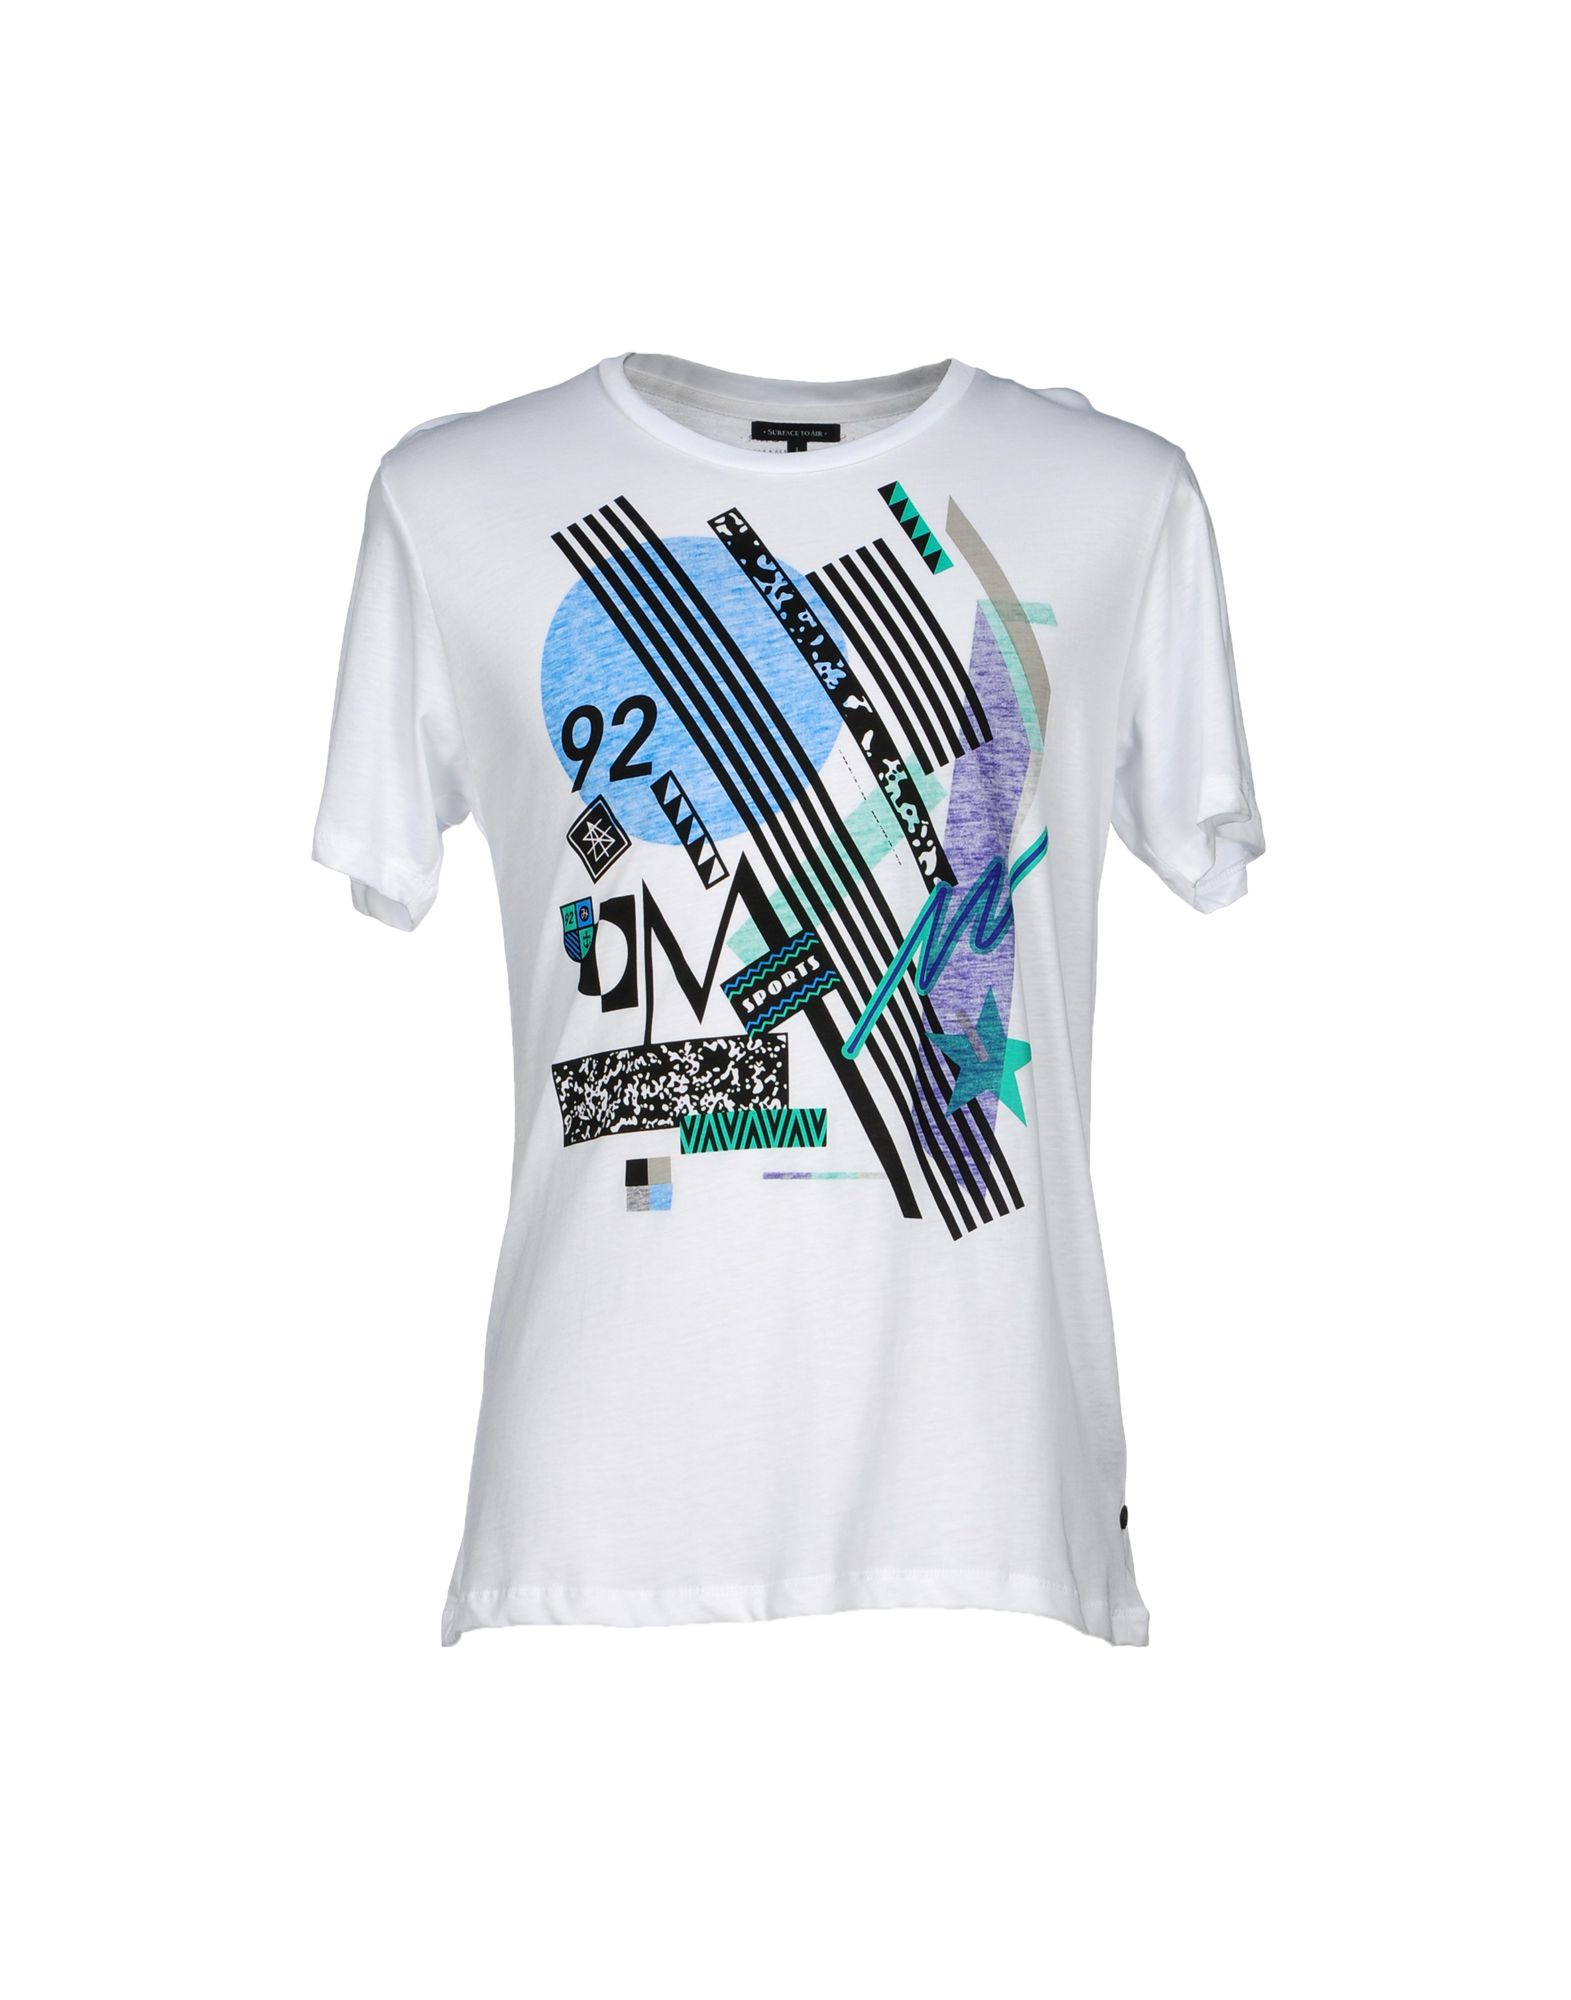 SURFACE TO AIR T-Shirt in White